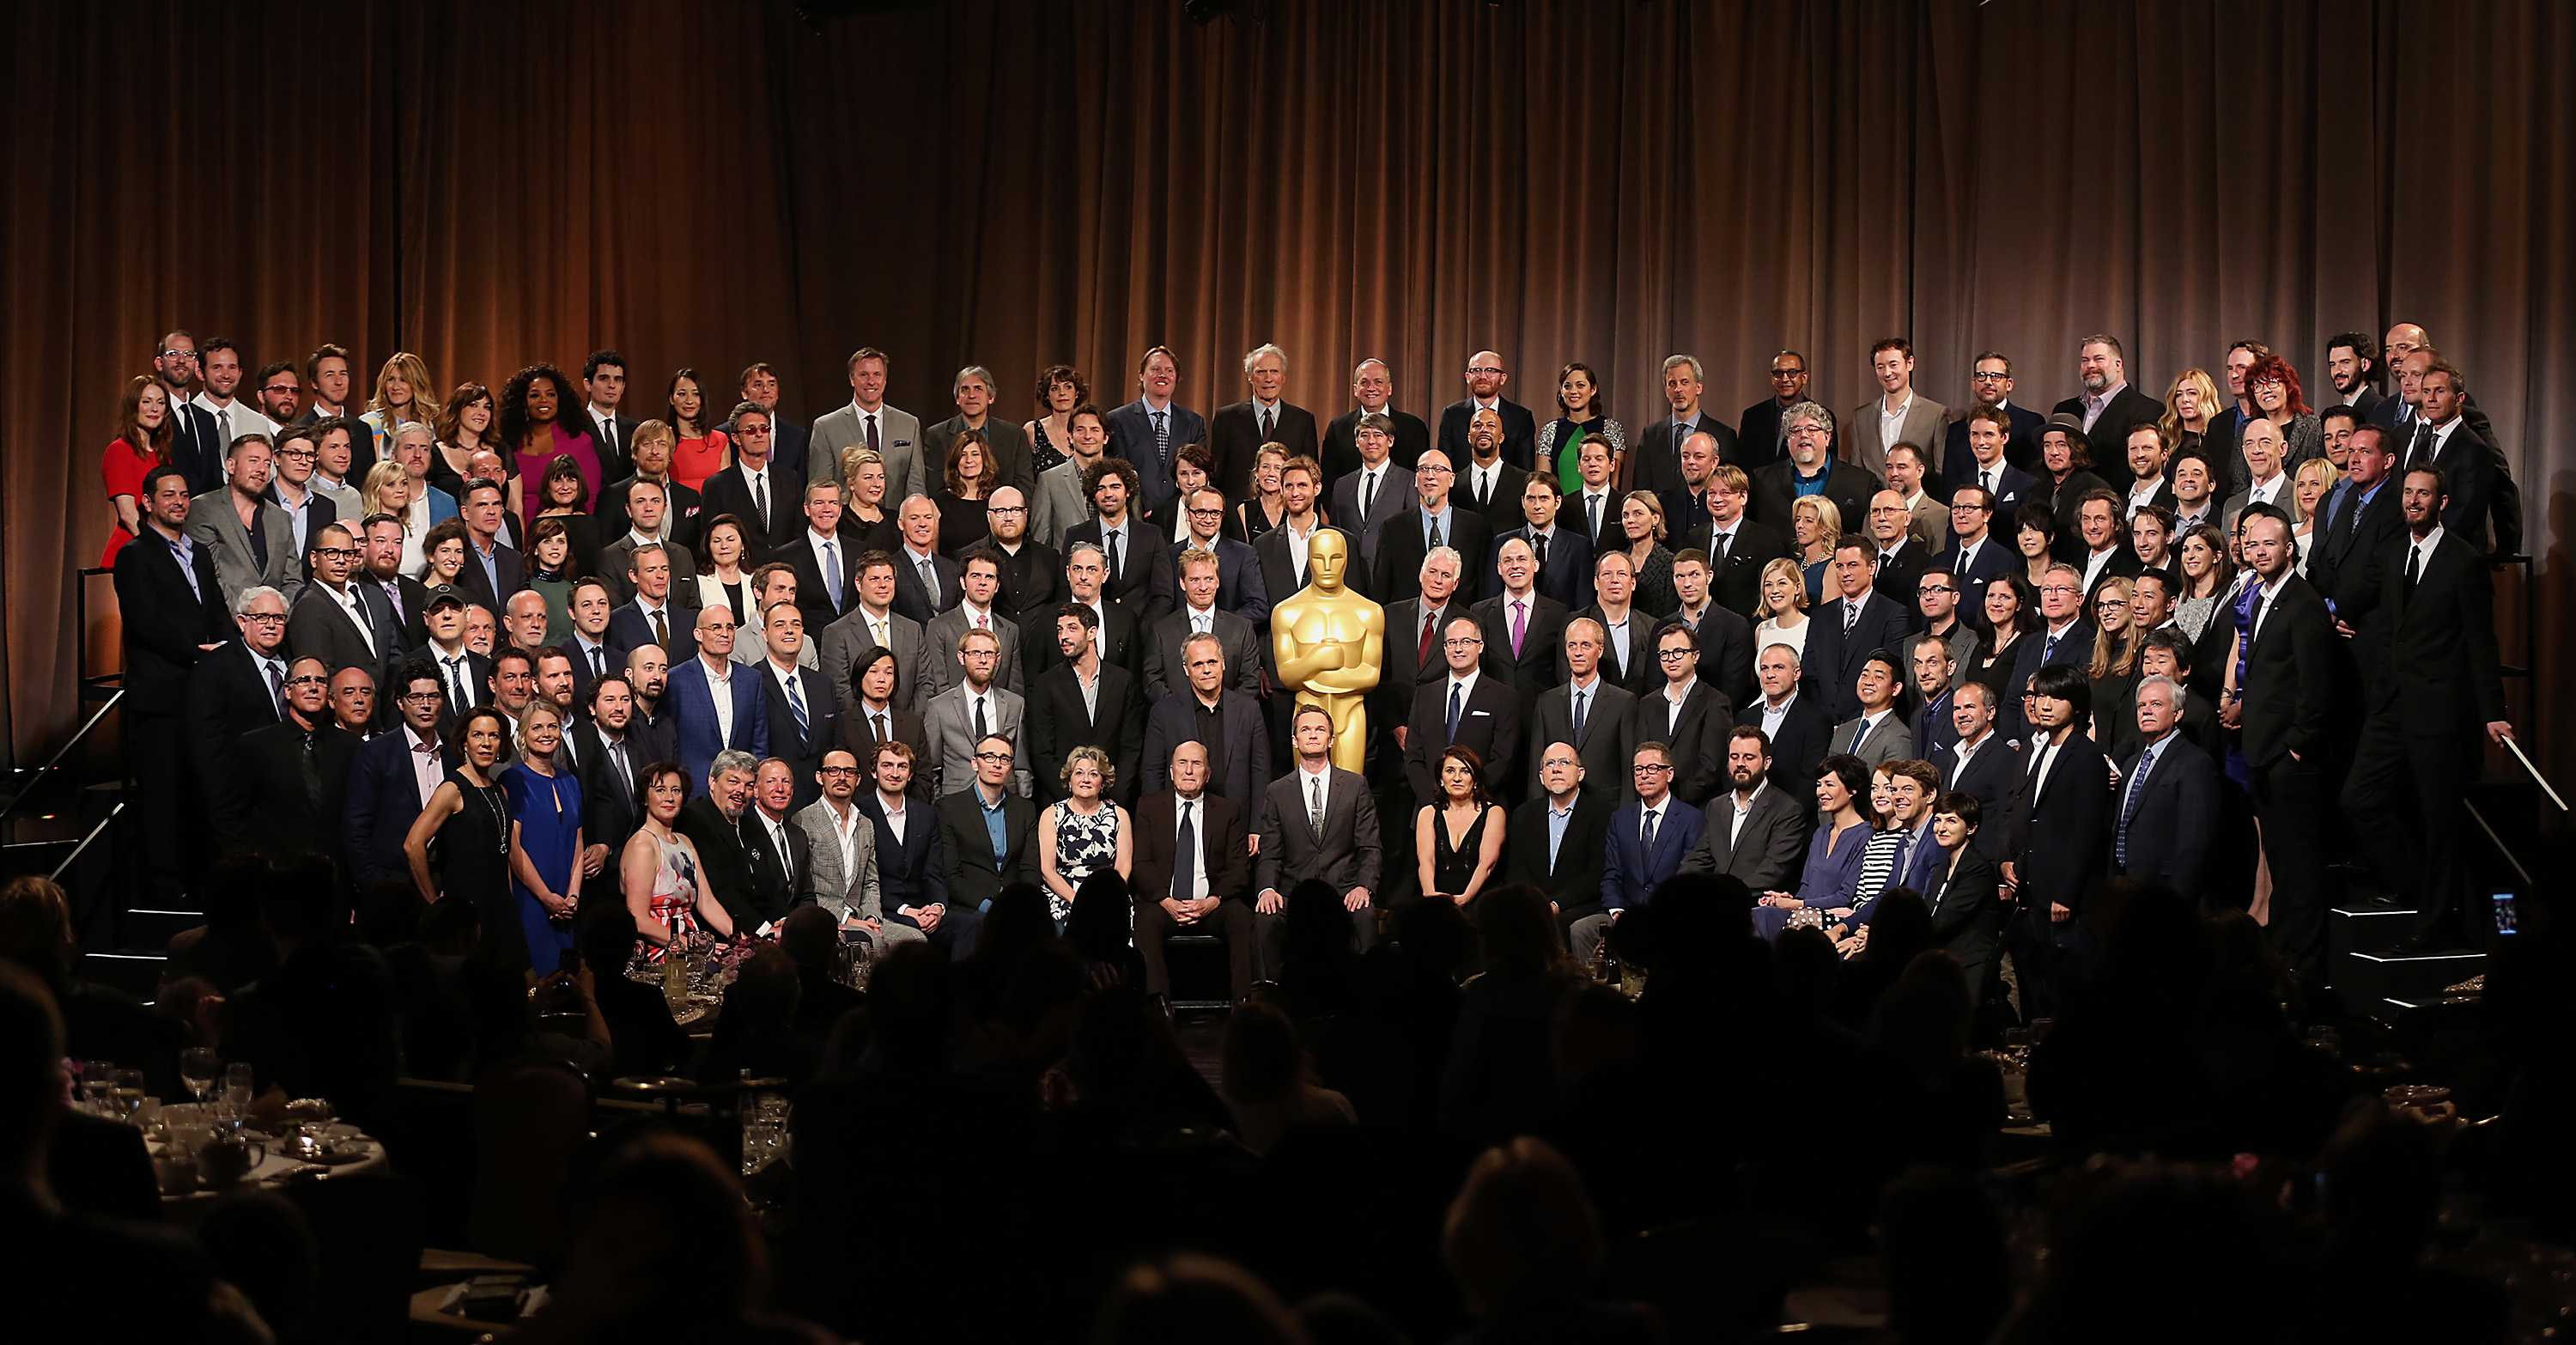 The 87th Academy Award nominee class during the luncheon at the Beverly Hills Hilton in Beverly Hills, Calif., on Monday, Feb. 2, 2015. (Al Seib/Los Angeles Times/TNS)